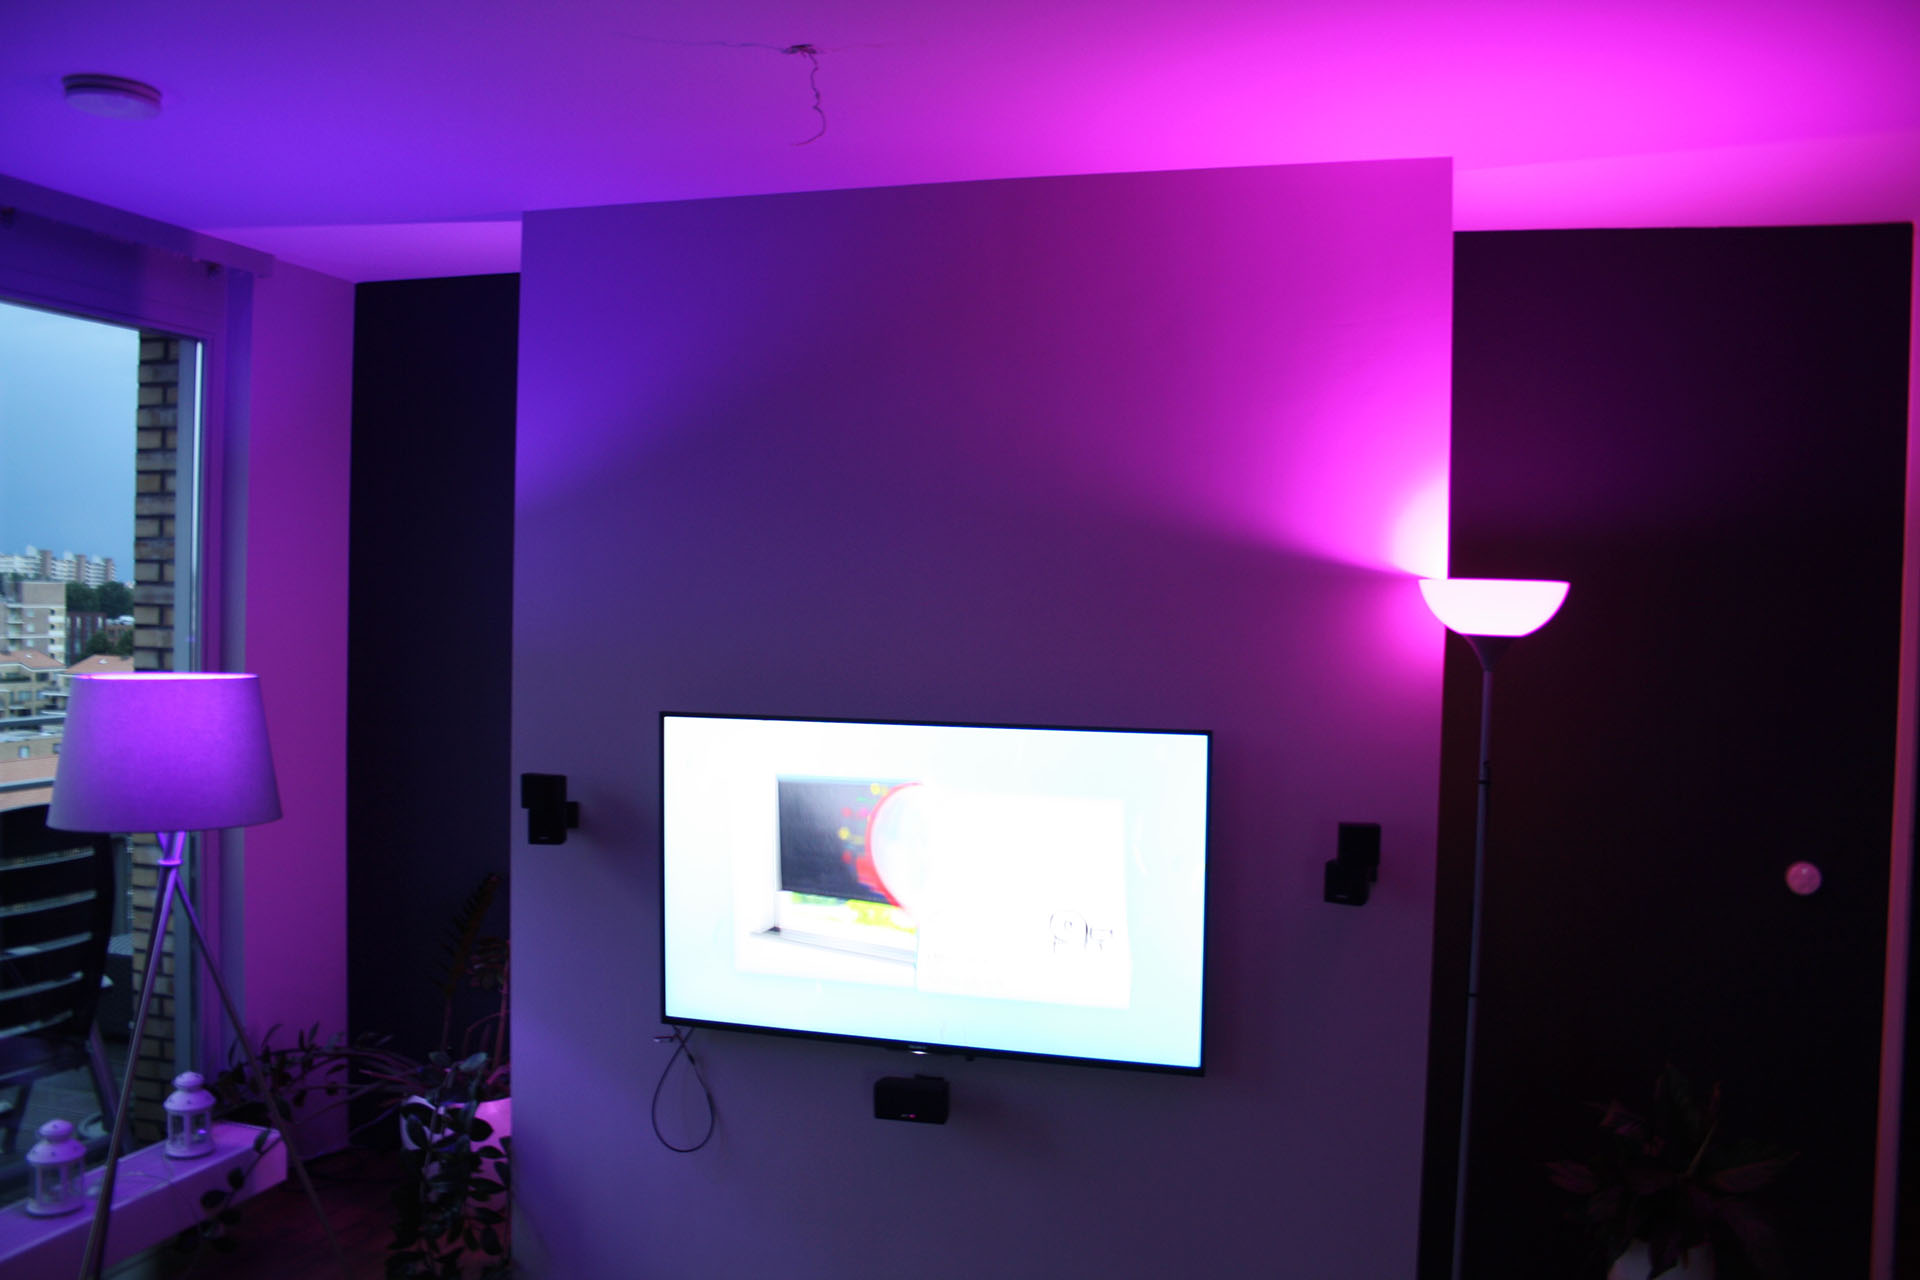 Verlichting in kleur - Philips Hue - Domotica Center